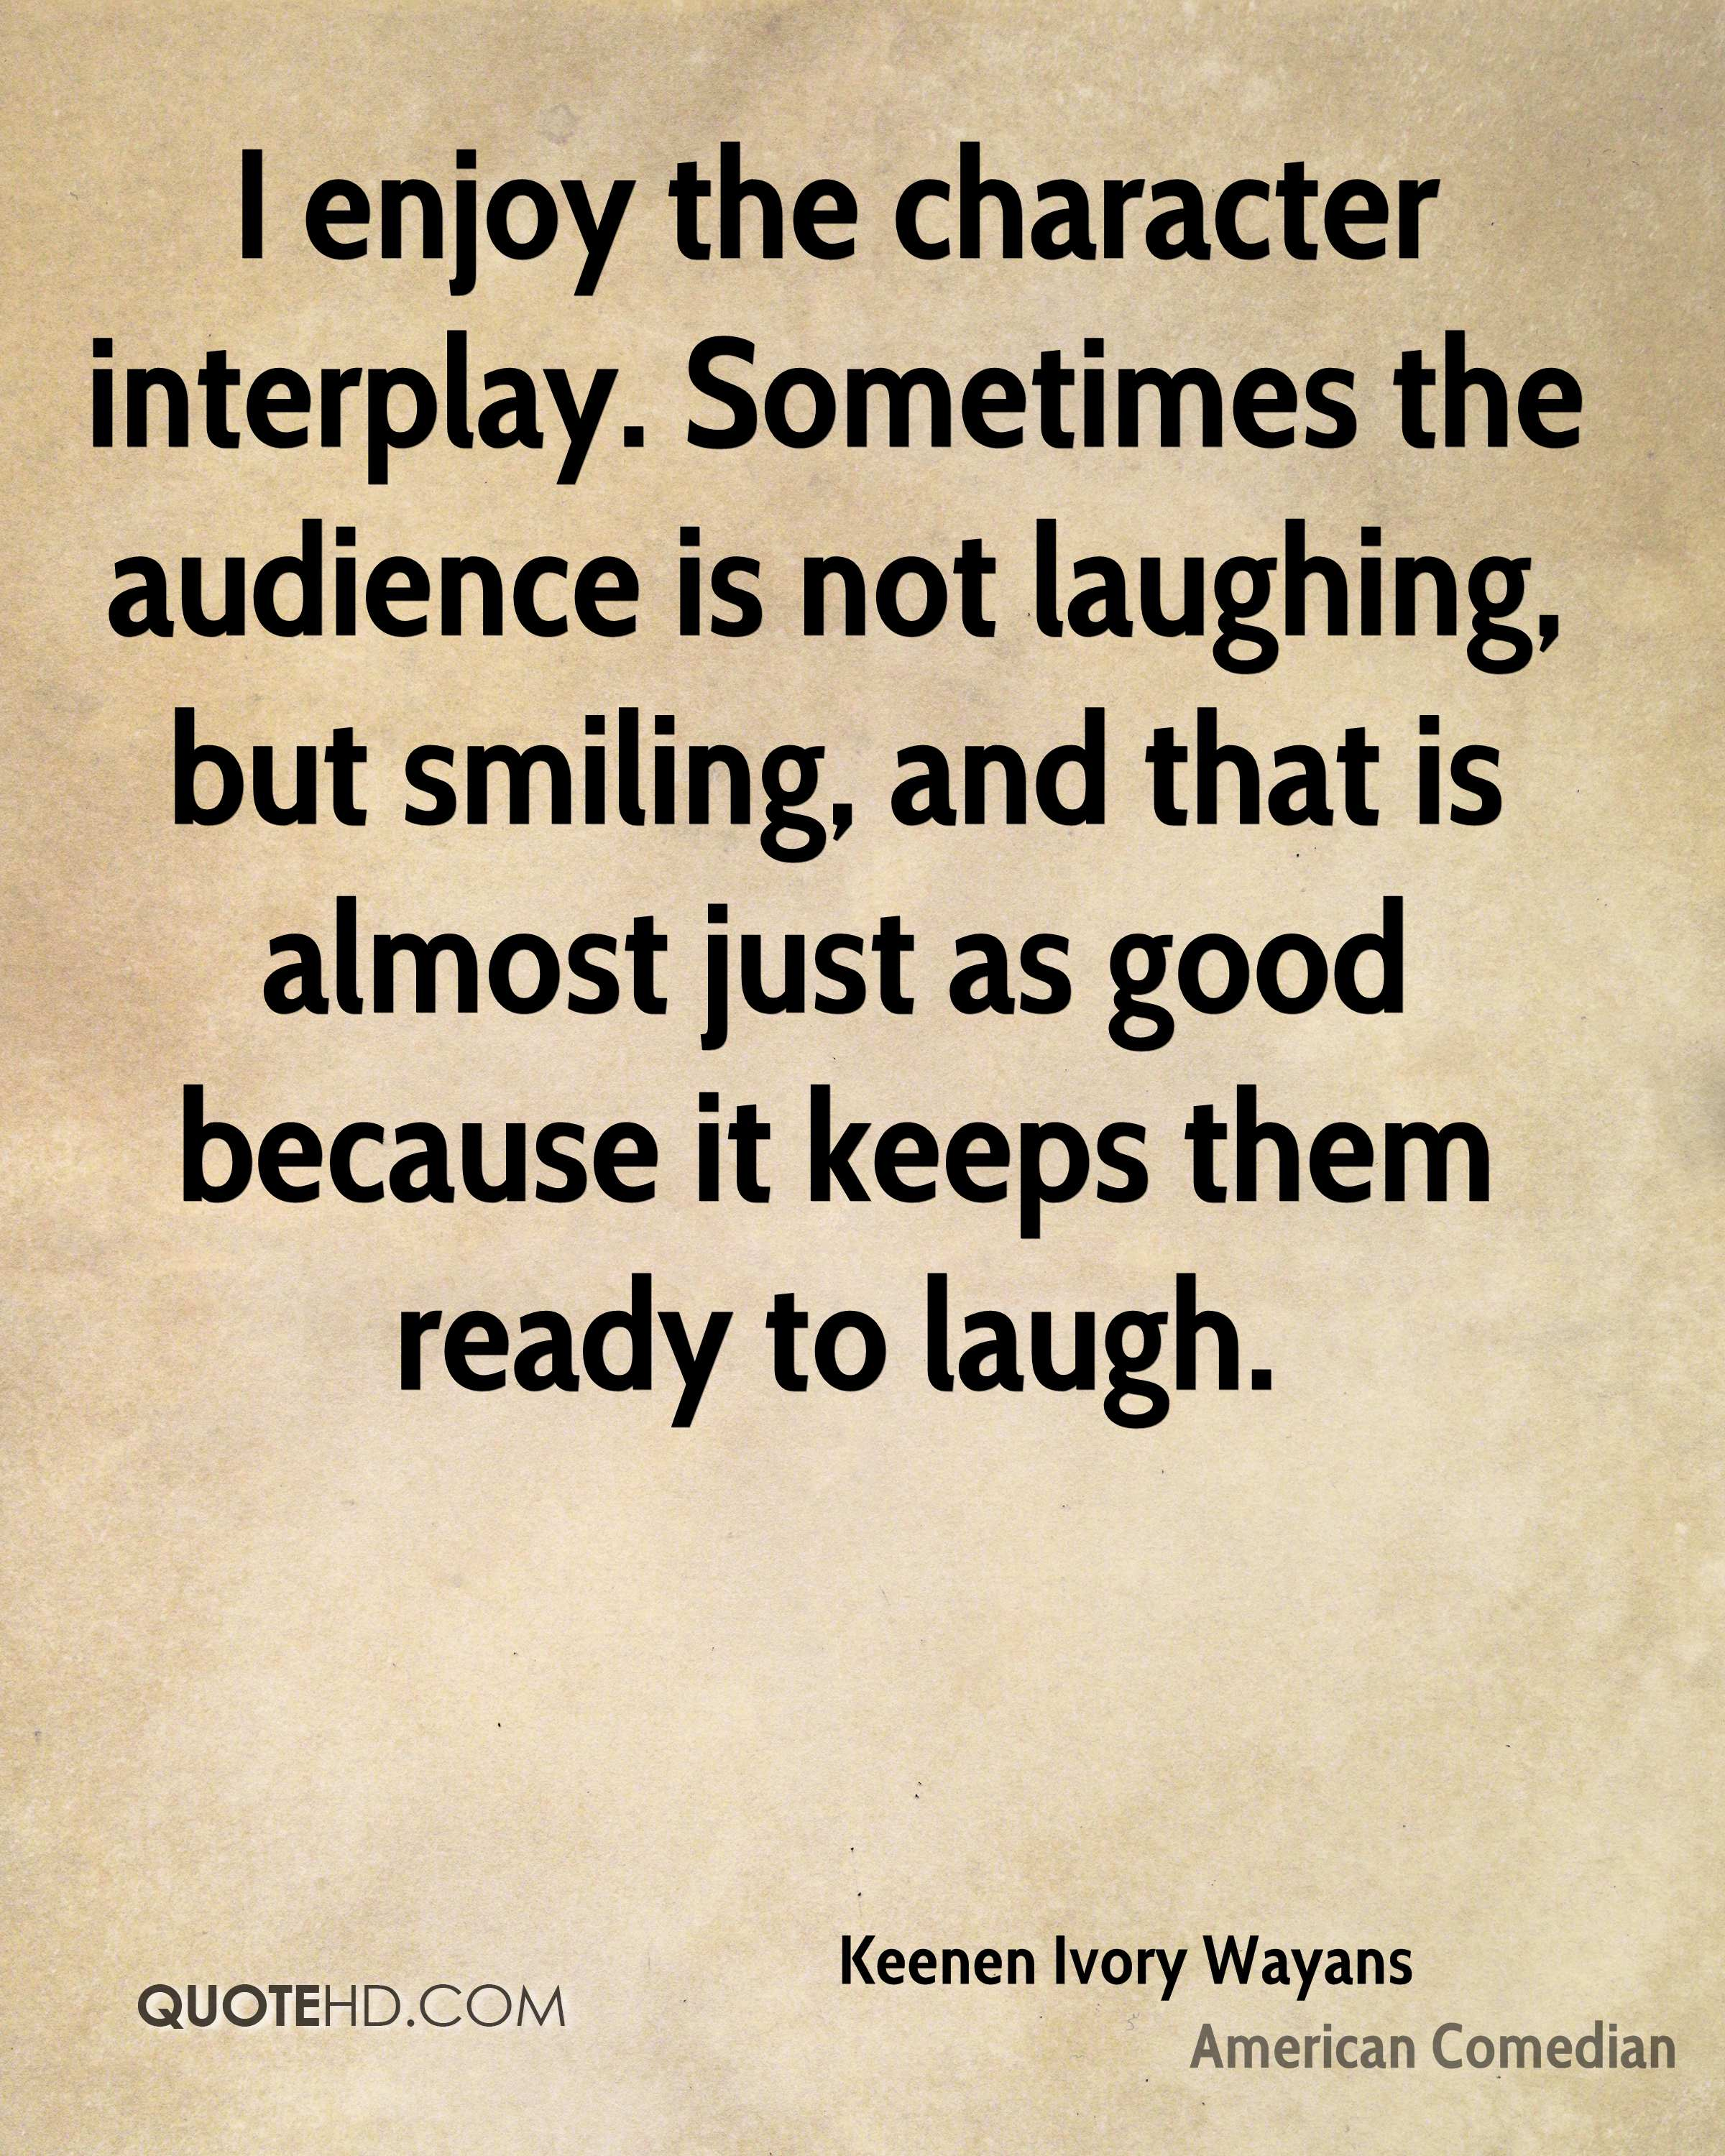 I enjoy the character interplay. Sometimes the audience is not laughing, but smiling, and that is almost just as good because it keeps them ready to laugh.